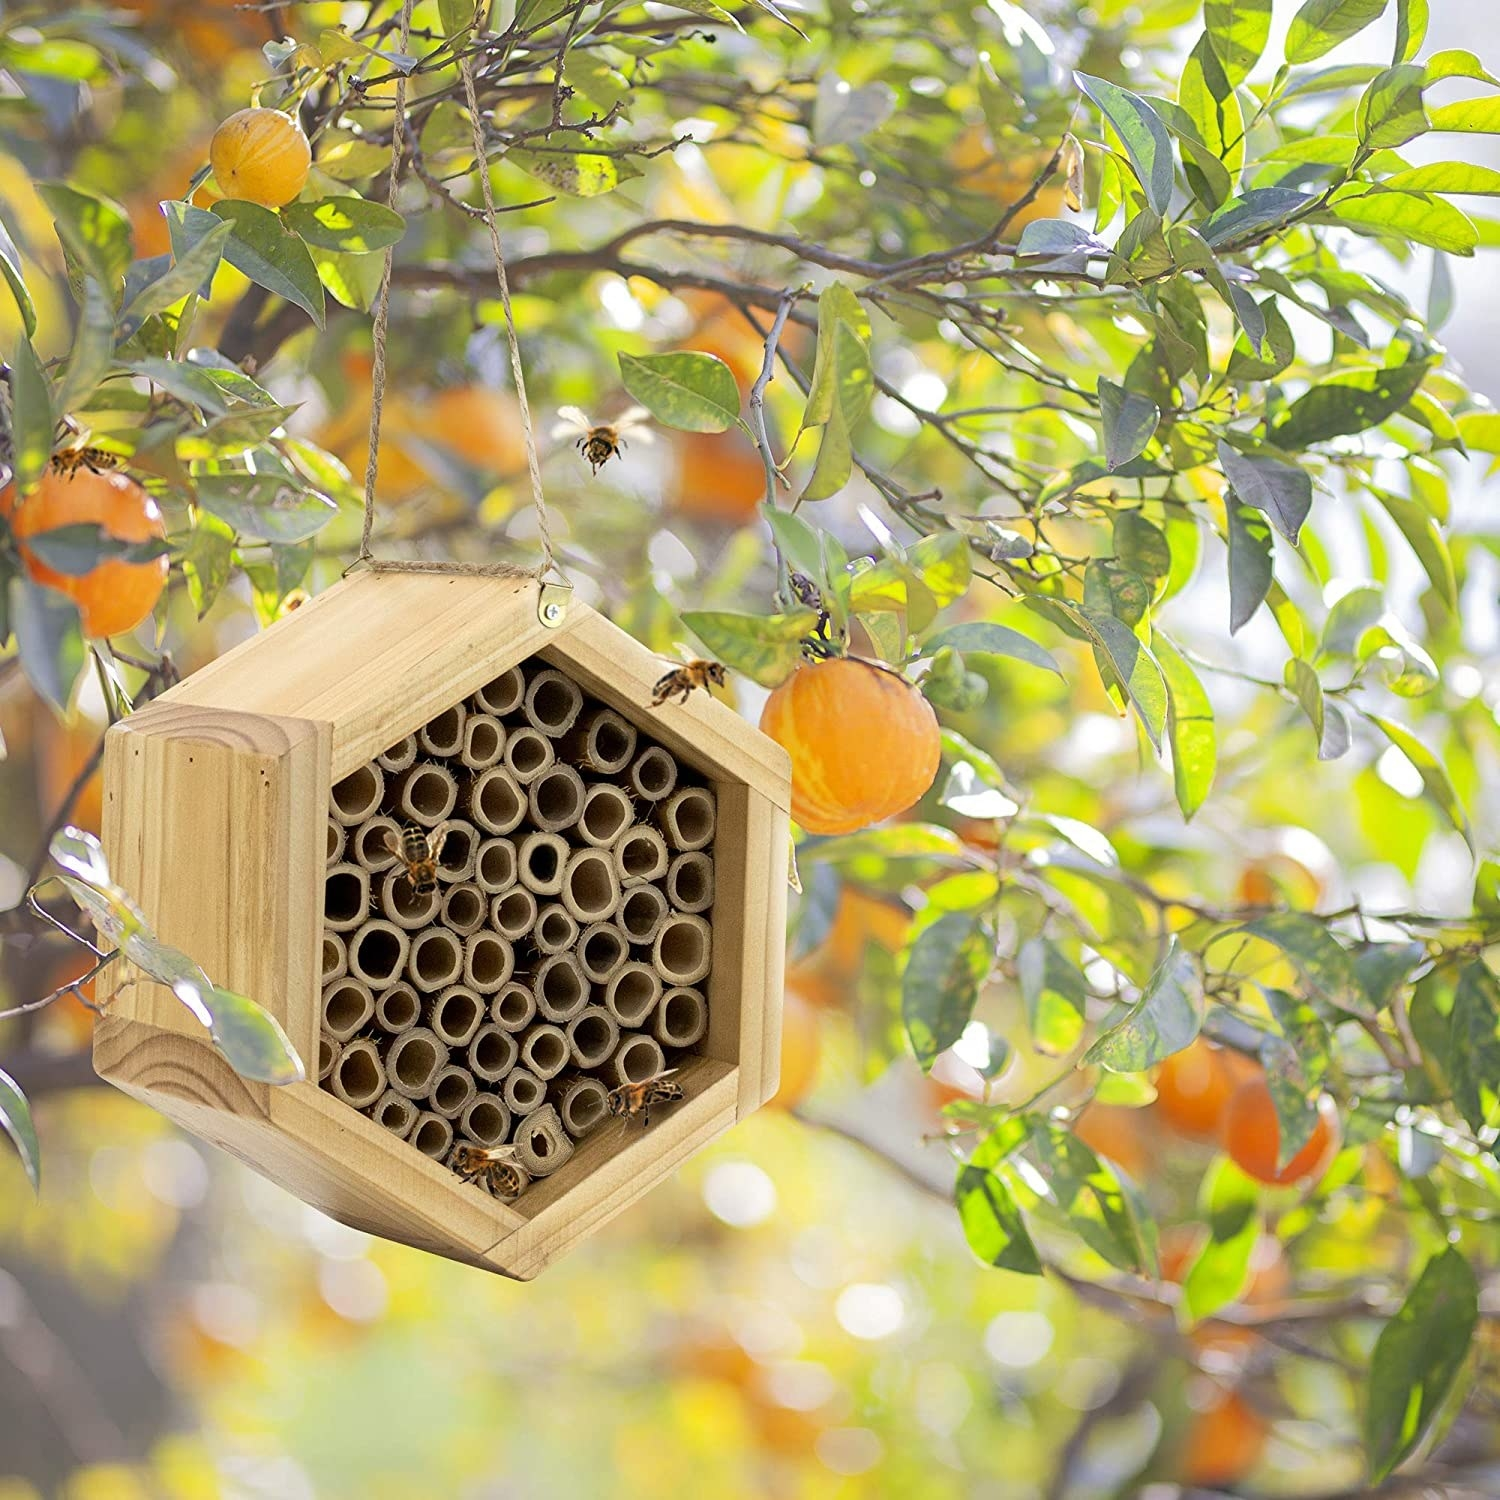 The house, which is filled with pre-made tubes in which the bees can nest